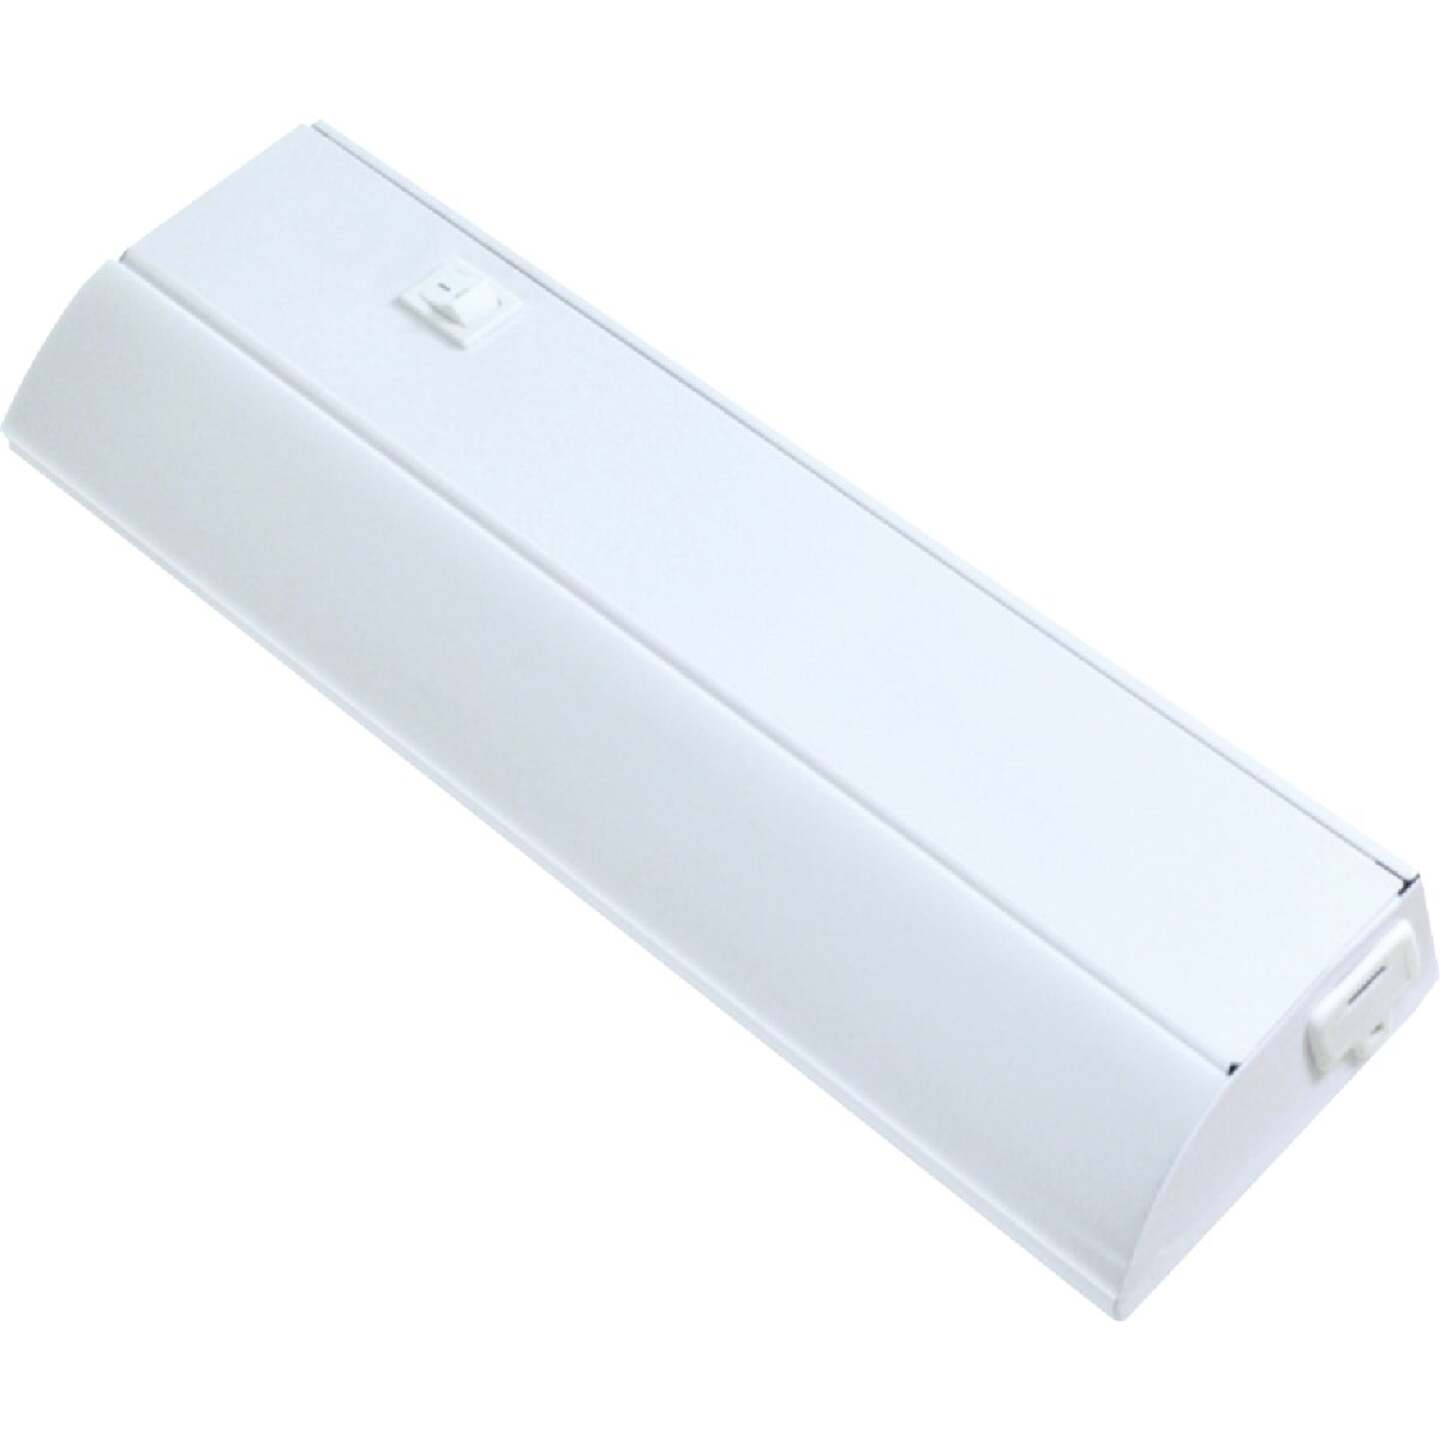 Good Earth Lighting Ecolight 12 In. Direct Wire White LED Under Cabinet Light Bar Image 1